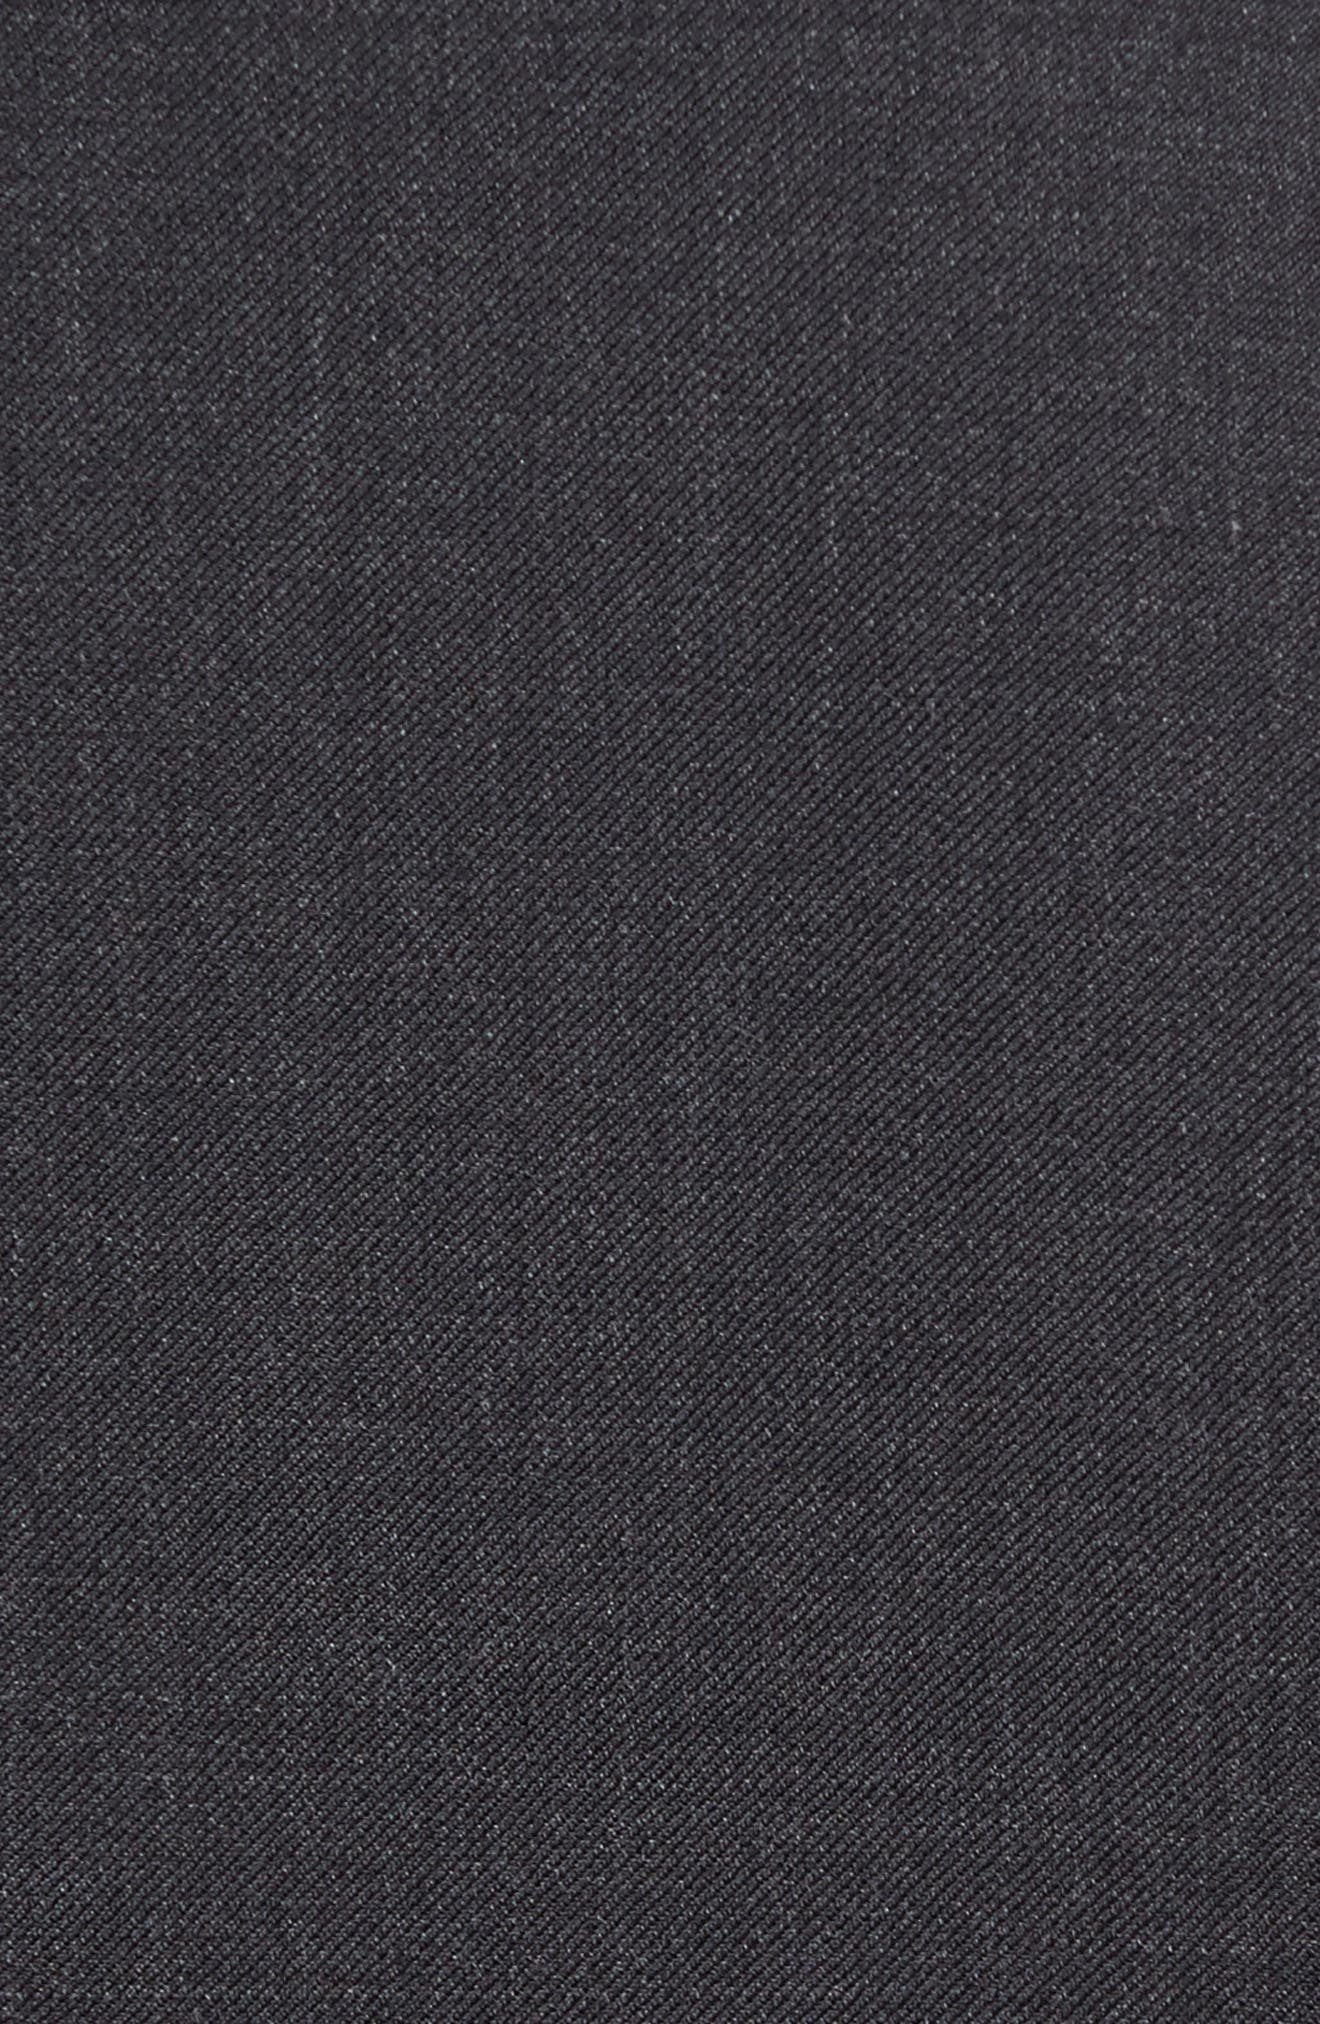 Chicago Classic Fit Solid Wool Suit,                             Alternate thumbnail 4, color,                             010